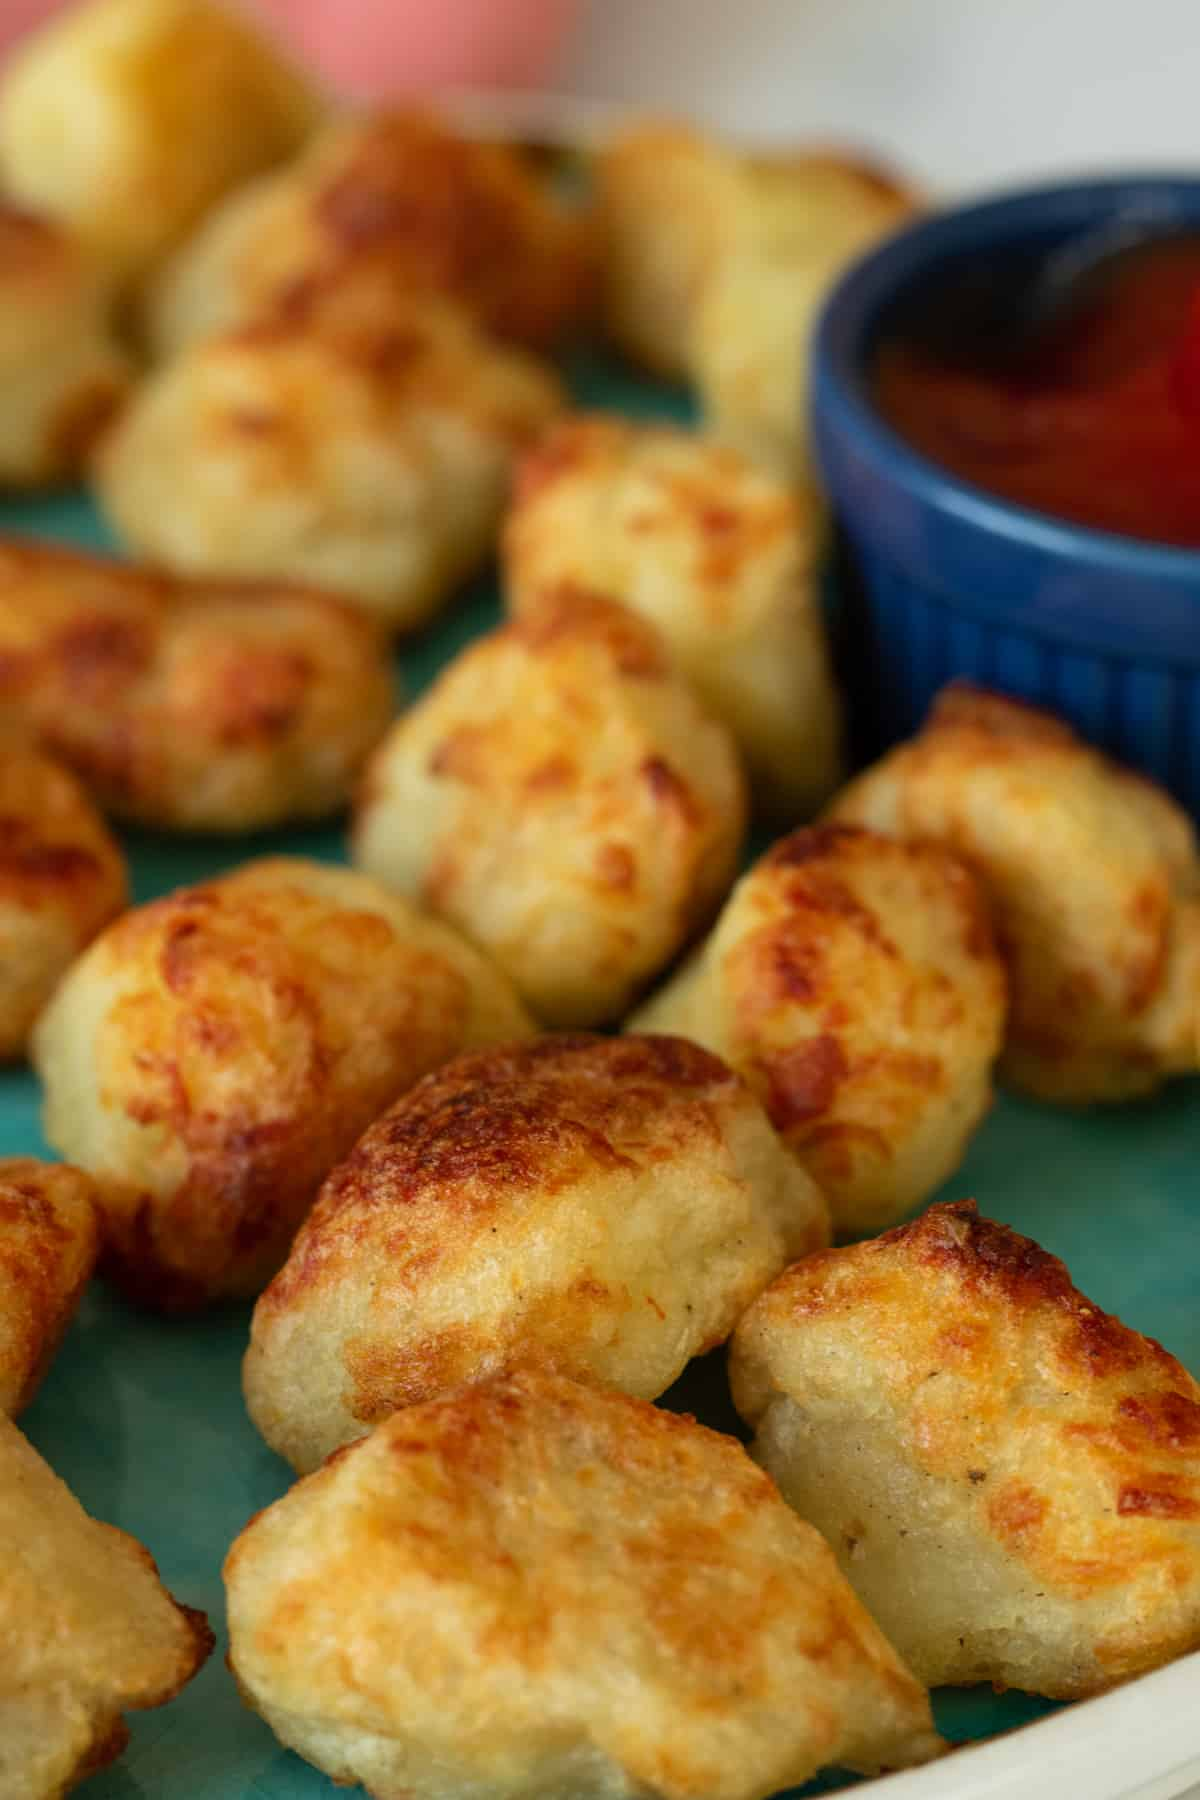 air fryer tater tots next to a small bowl with ketchup